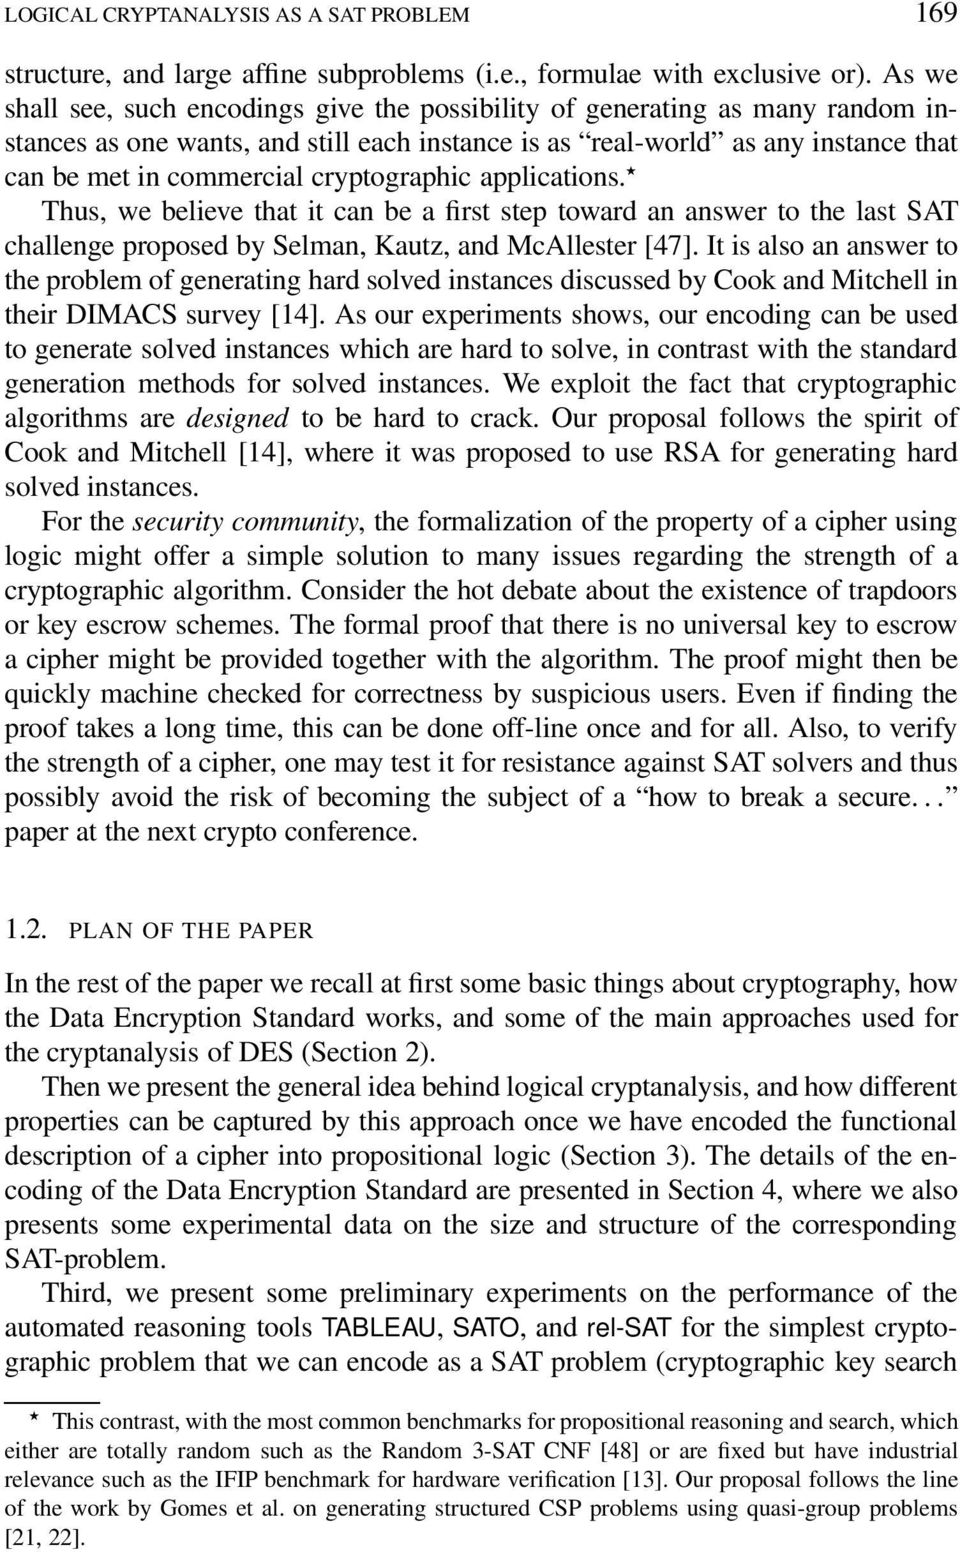 cryptographic applications. Thus, we believe that it can be a first step toward an answer to the last SAT challenge proposed by Selman, Kautz, and McAllester [47].